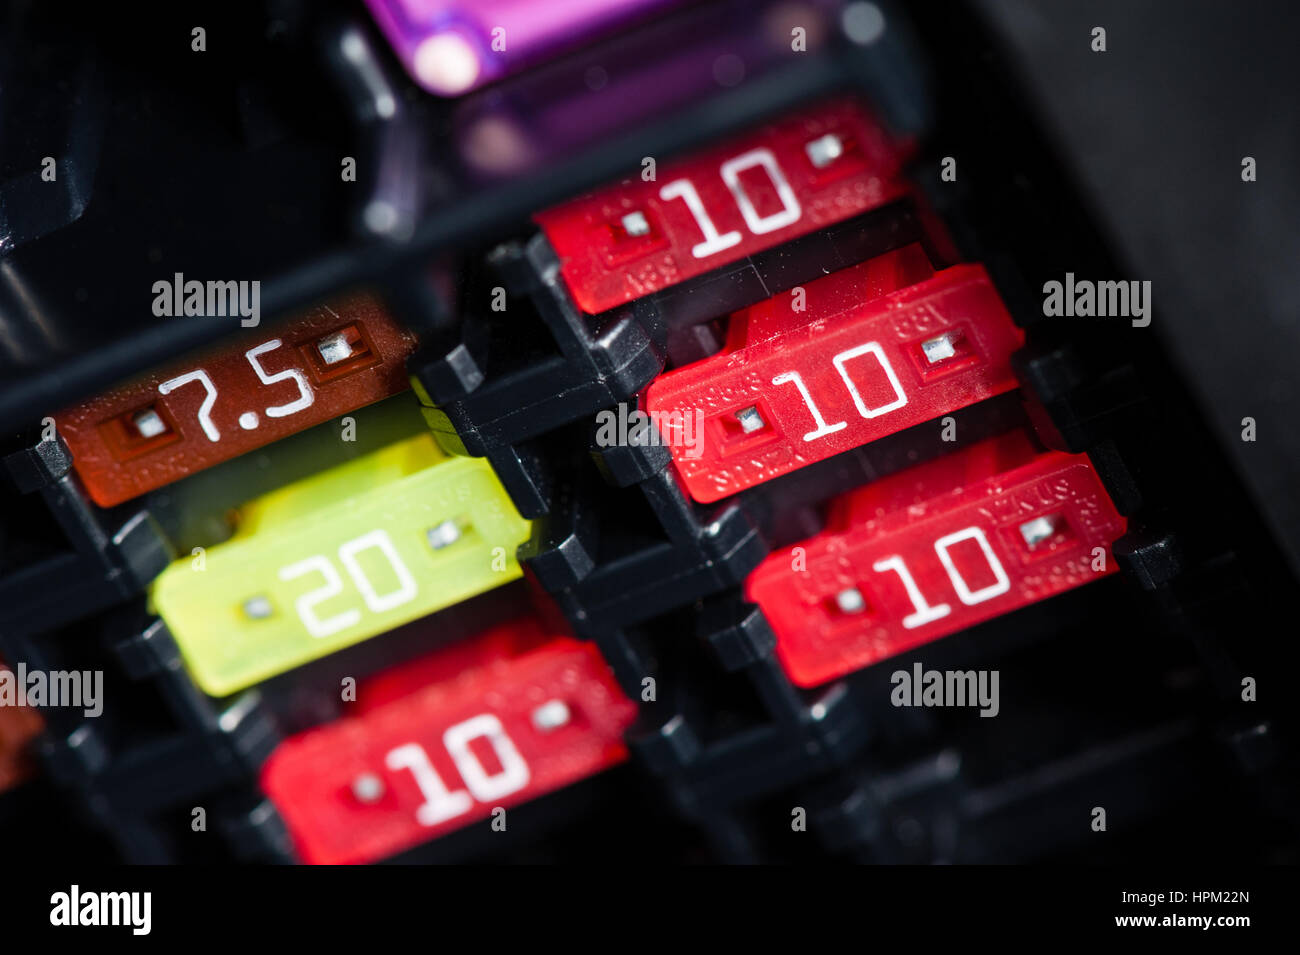 Electric Fuse Box Car Stock Photos On Closeup Fuses In Inside The Image